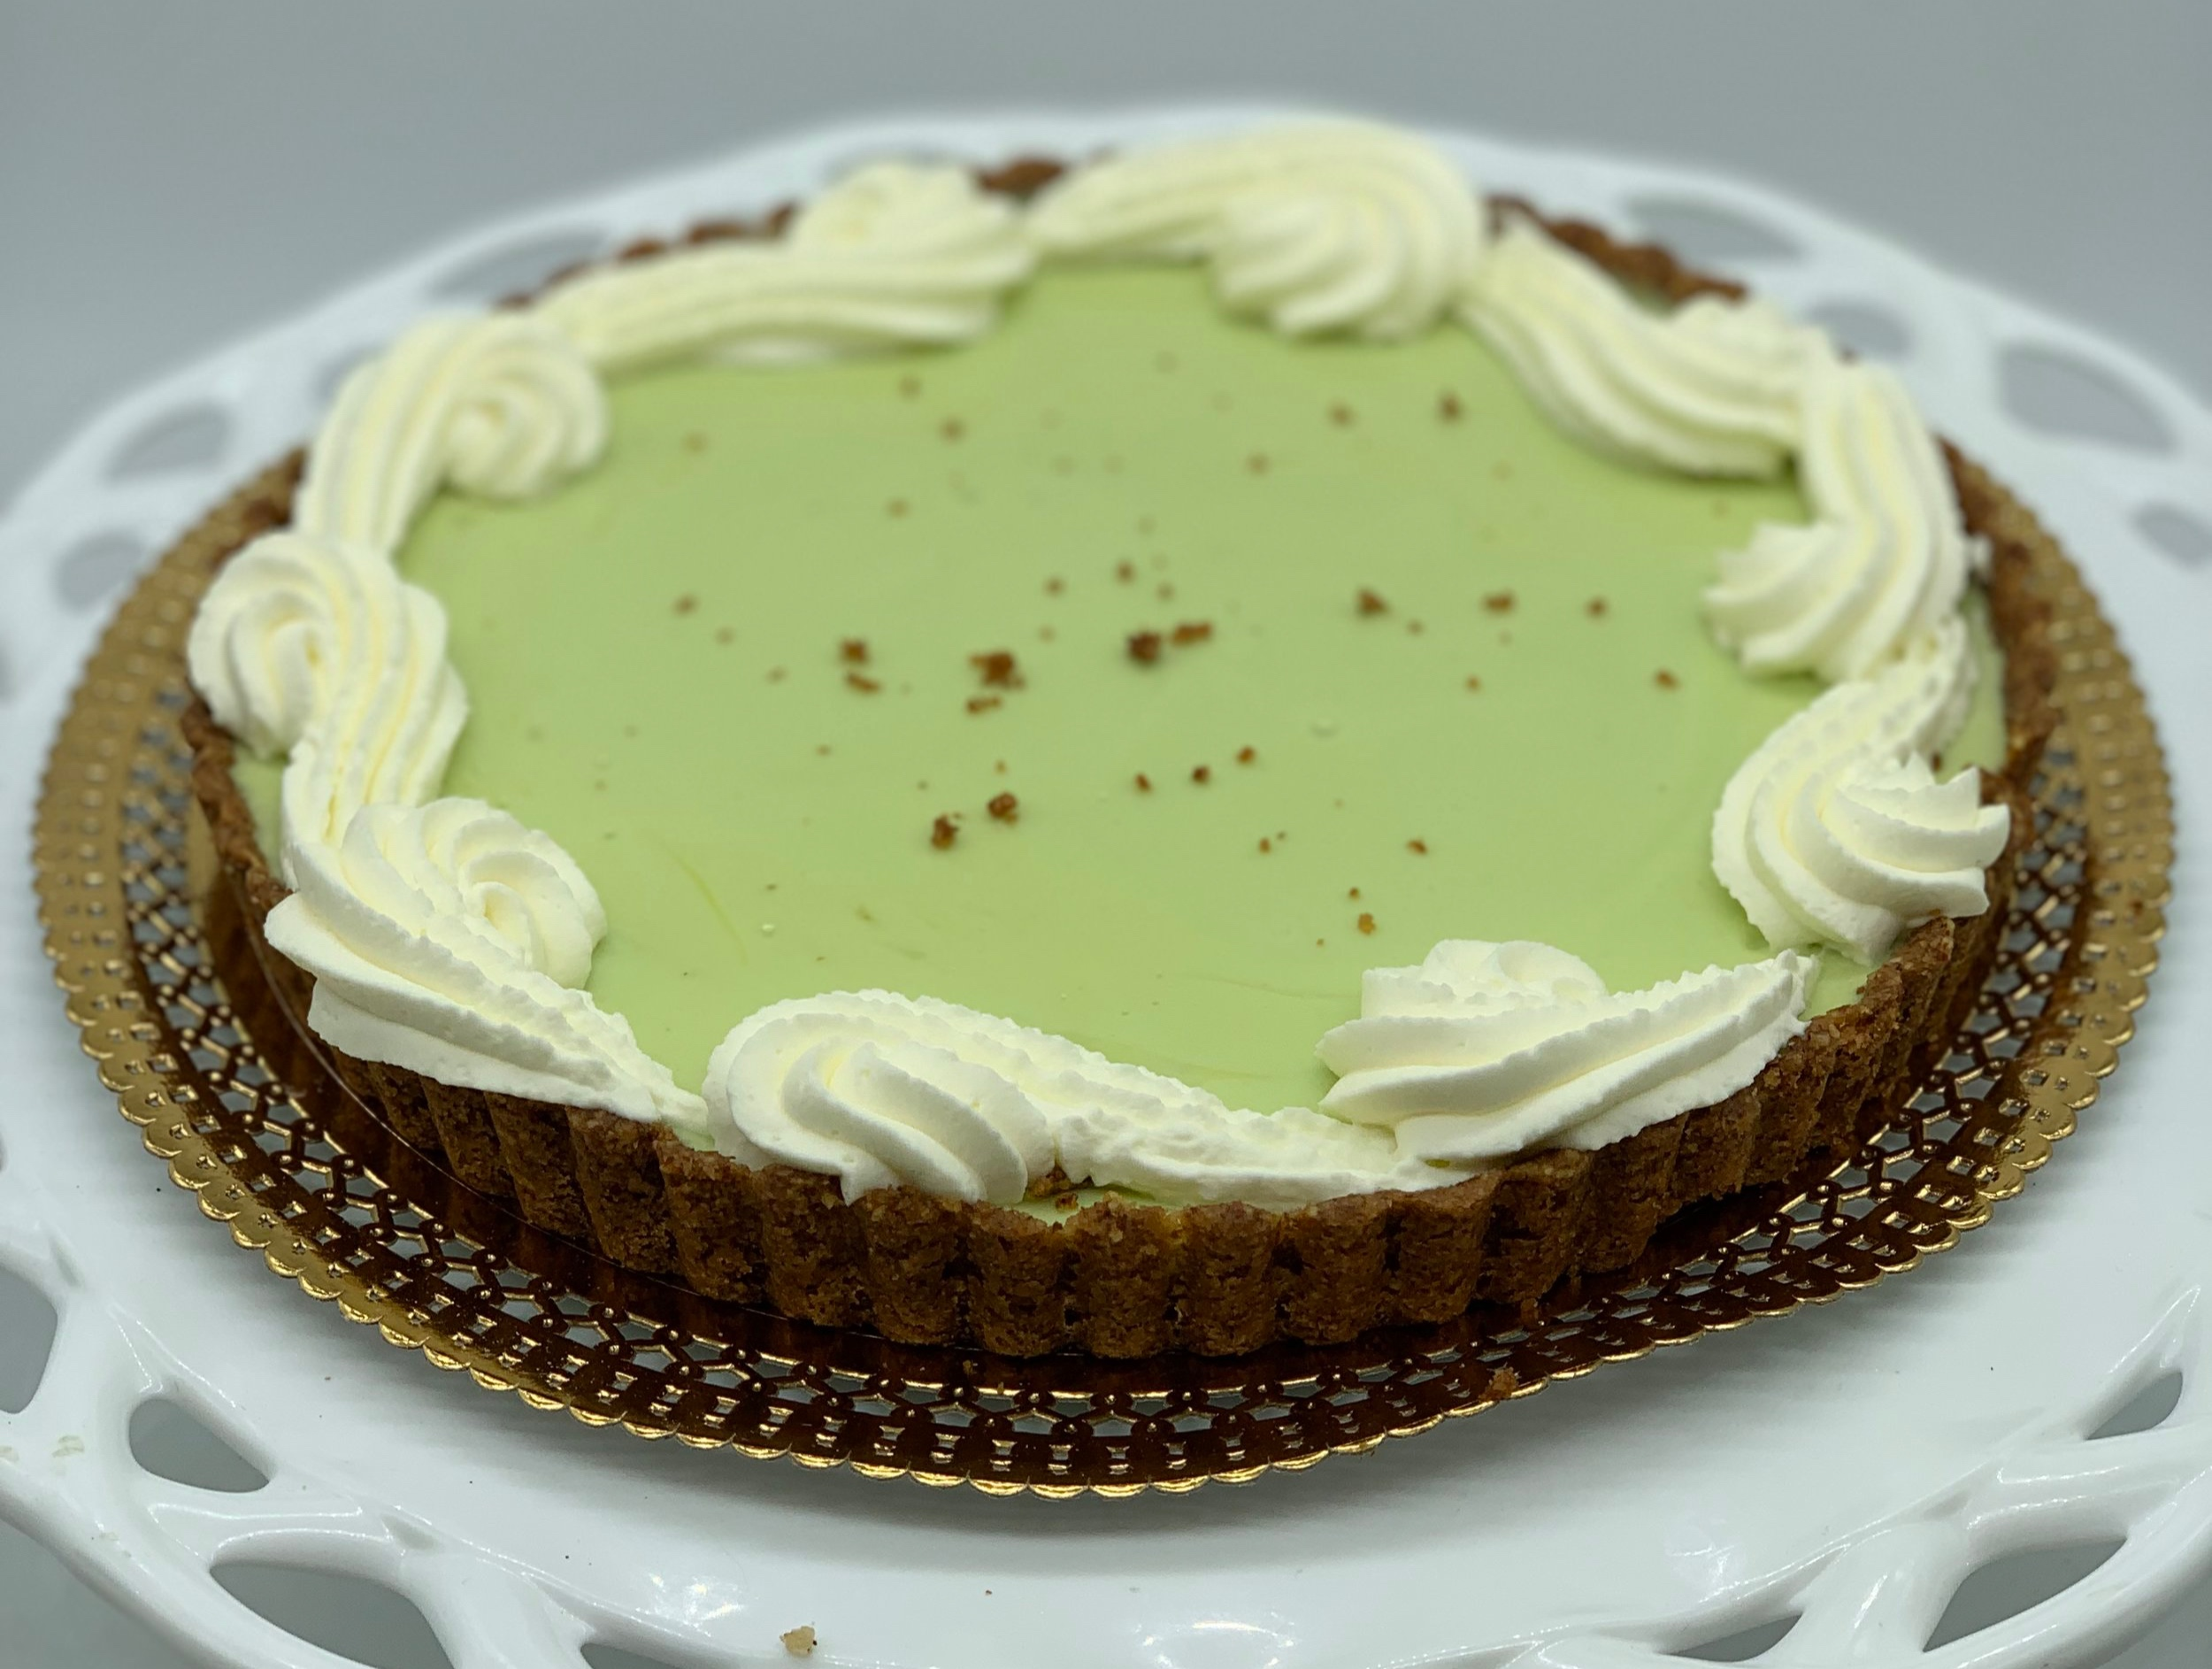 Key Lime Tart - Sweet almond pastry crust filled with a tart key lime filling and finished with whipped cream~Also available in an individual size~